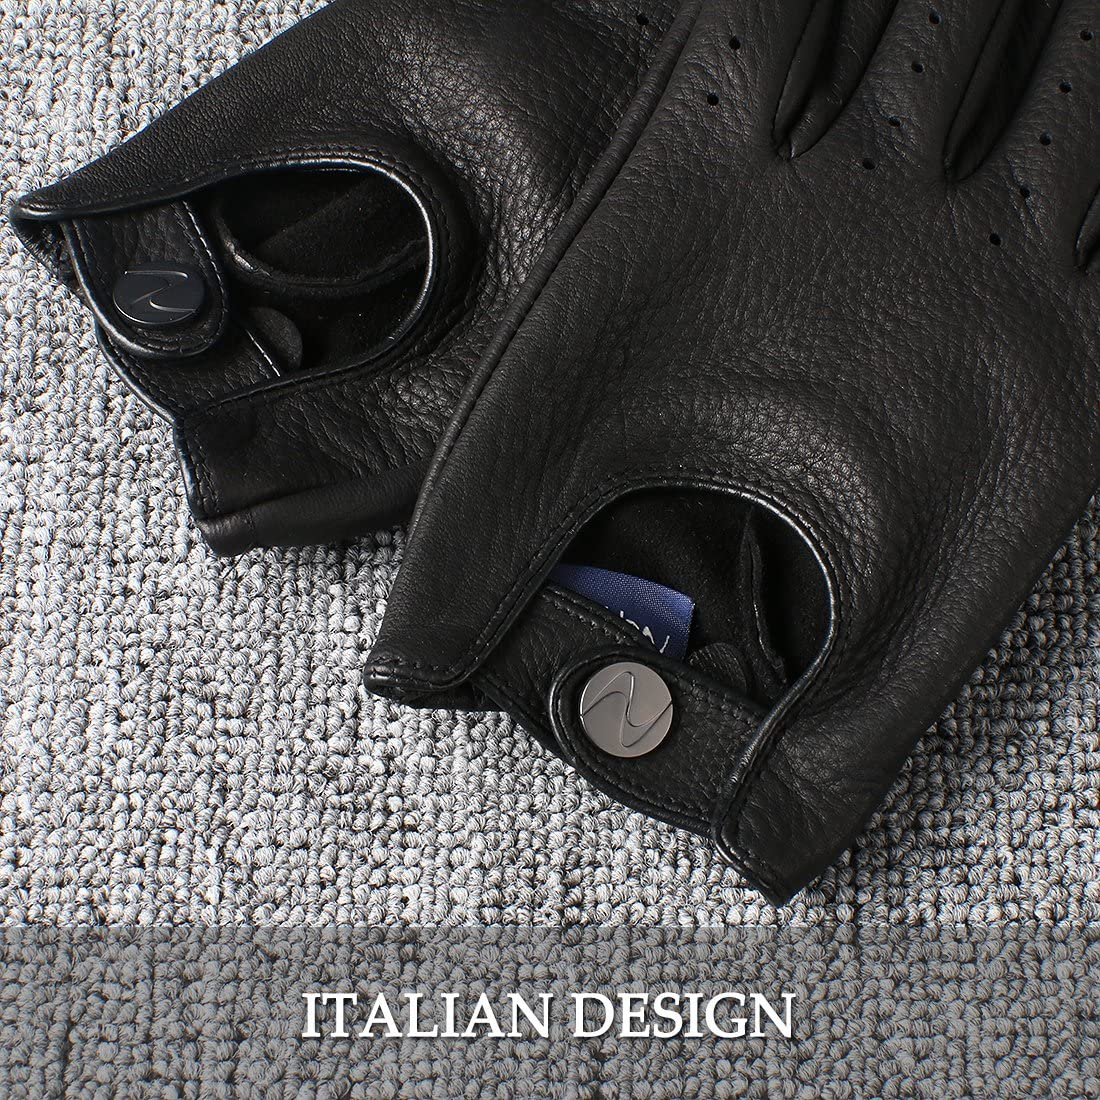 Nappaglo Mens Deerskin Leather Driving Gloves Touchscreen Full Finger Motorcycle Cycling Riding Unlined Gloves